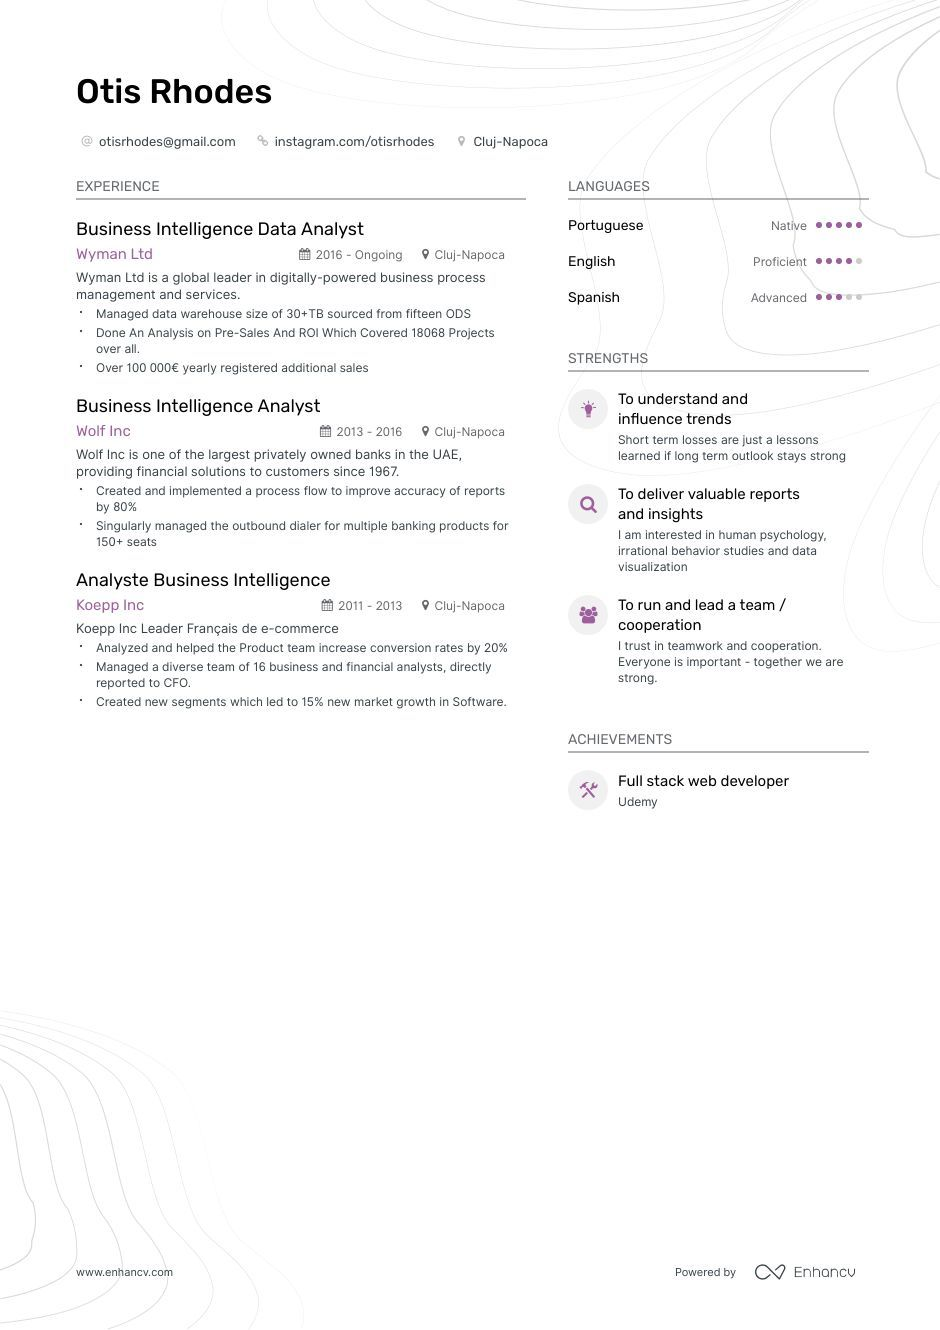 Business intelligence resume example and guide for 2019